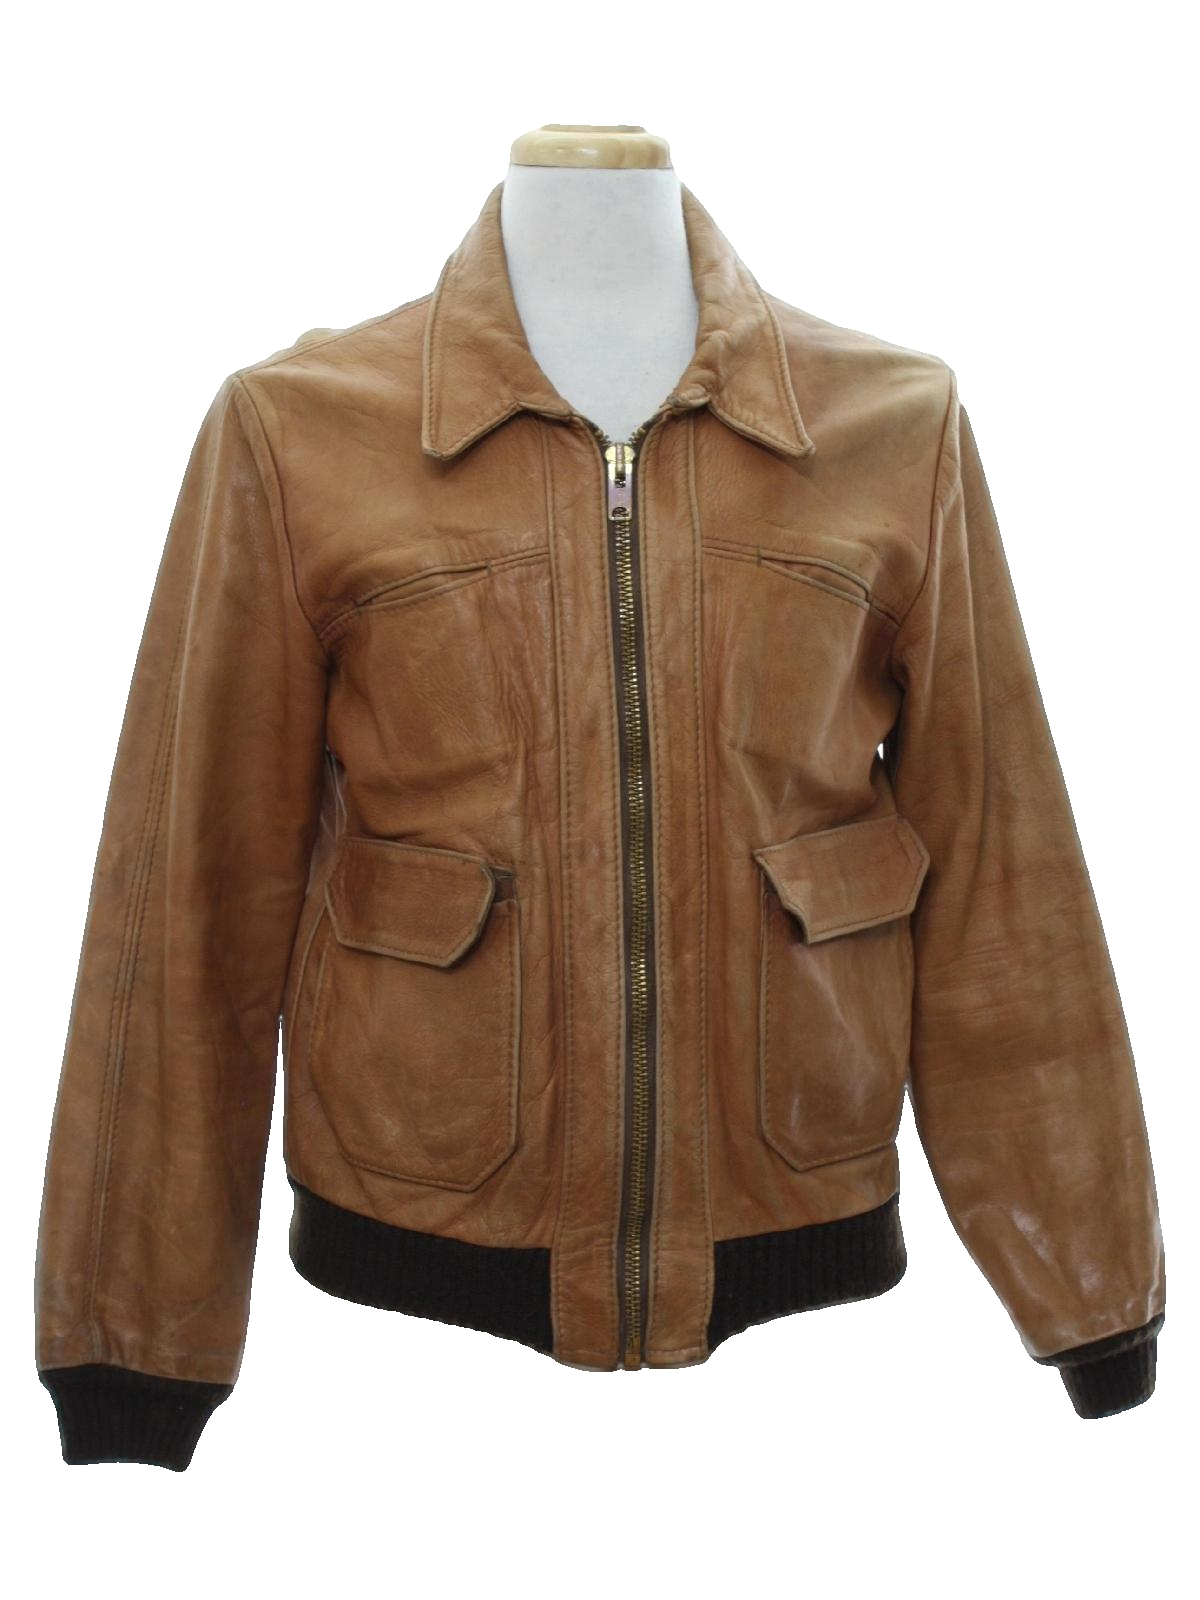 Mens Vintage Leather Jackets at RustyZipper.Com Vintage Clothing